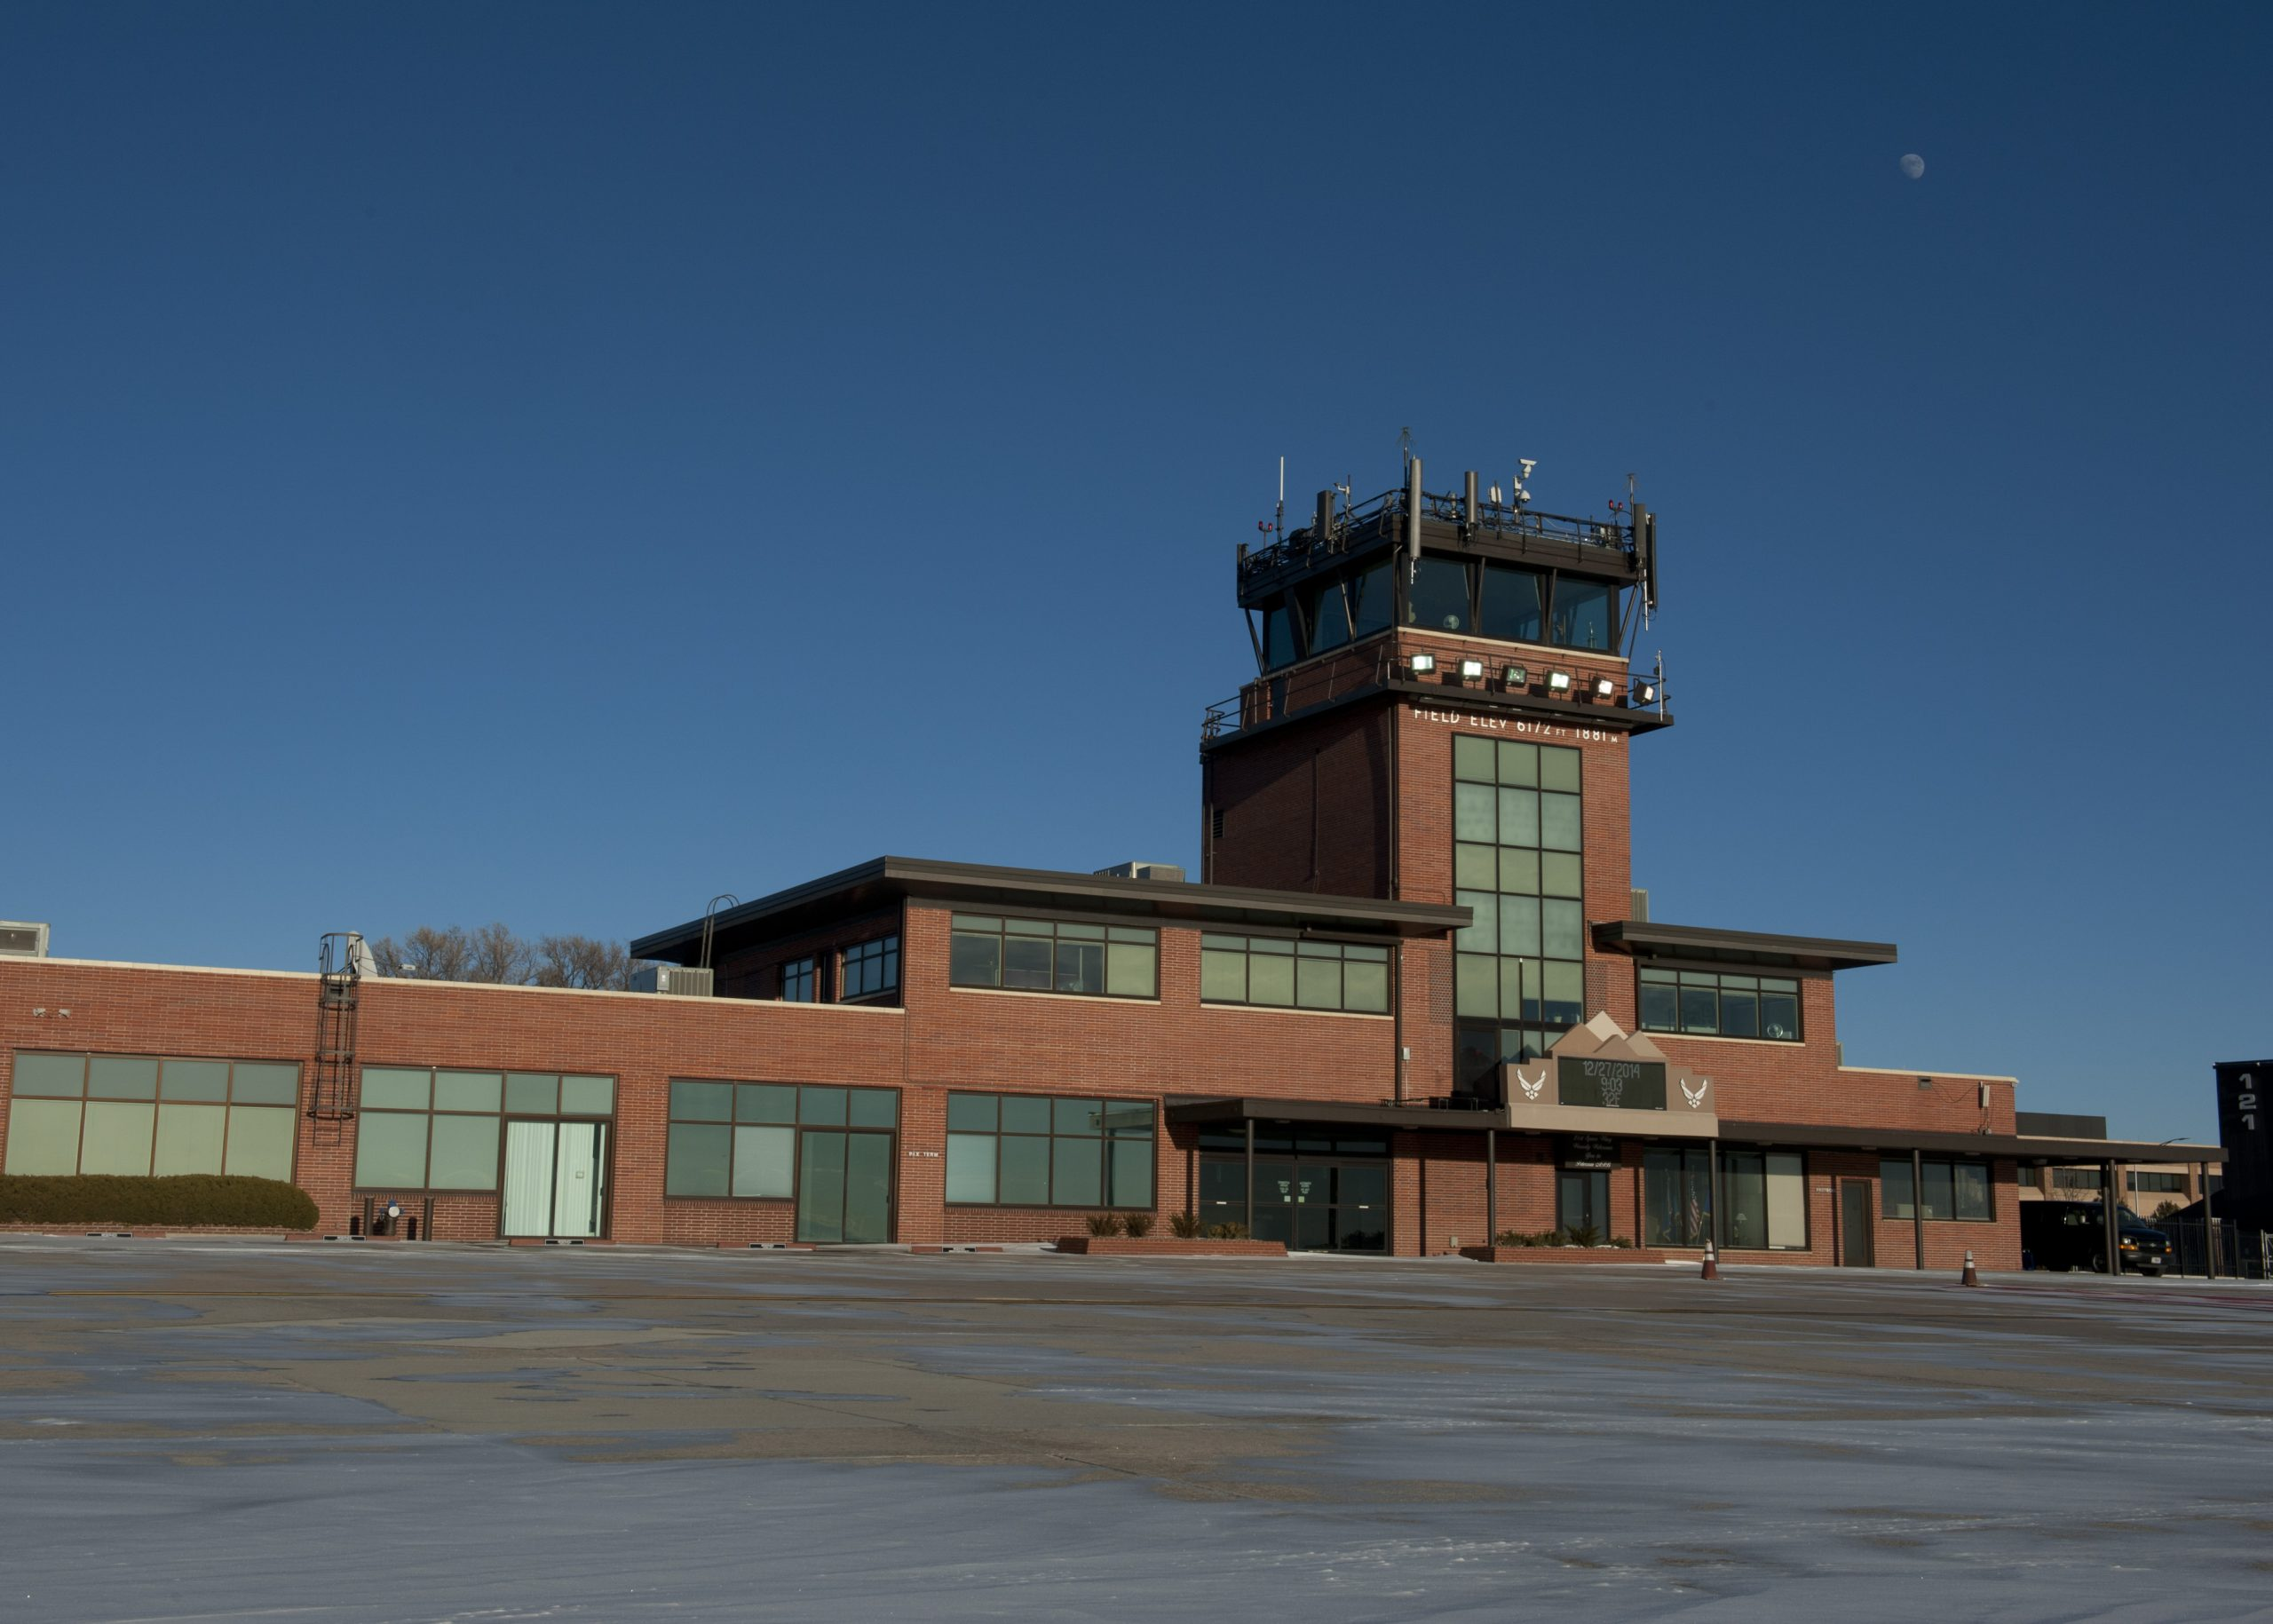 The traffic control tower at Peterson airfield.